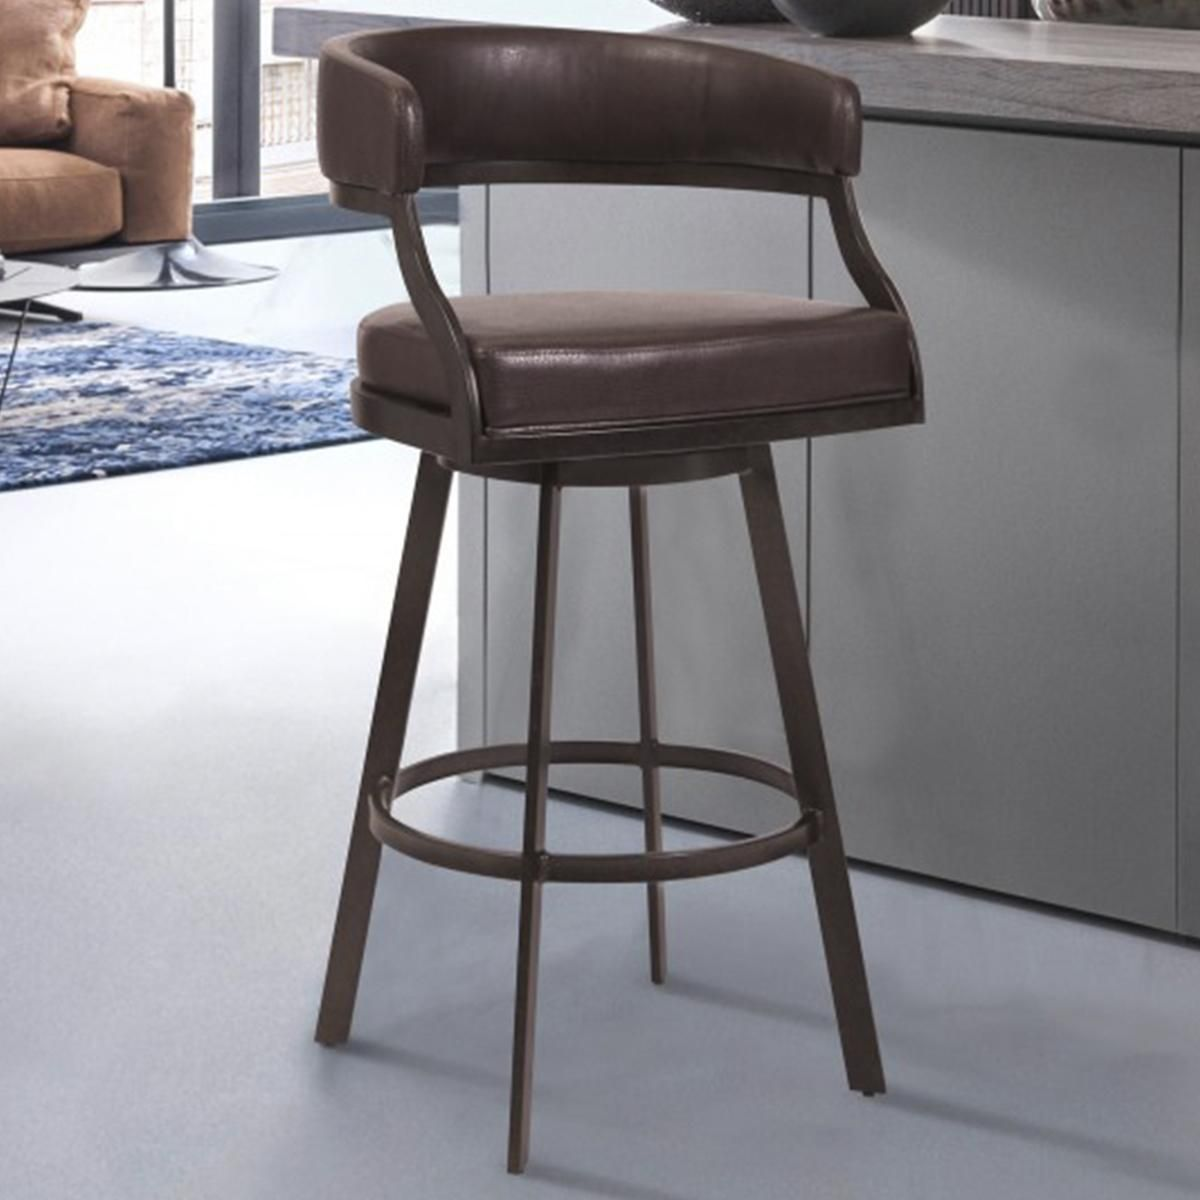 Blue River Saturn 30 Barstool With Ford Brown Seat In Auburn Bay